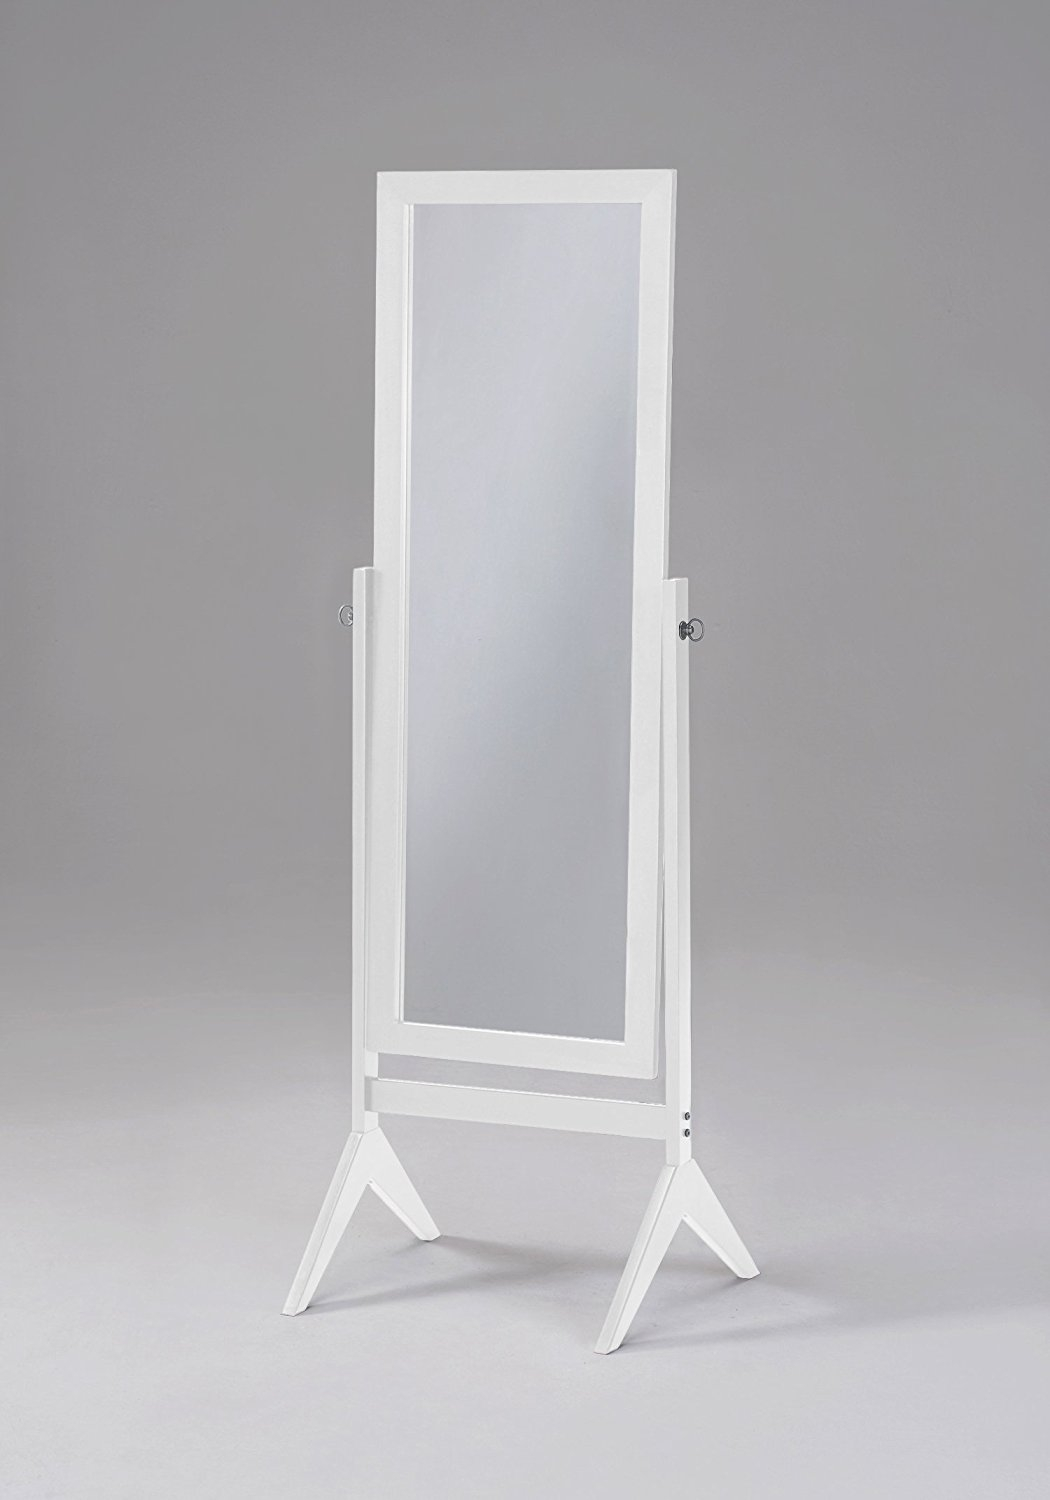 Shop Amazon Floor Mirrors With Dress Mirrors Free Standing (Image 14 of 15)